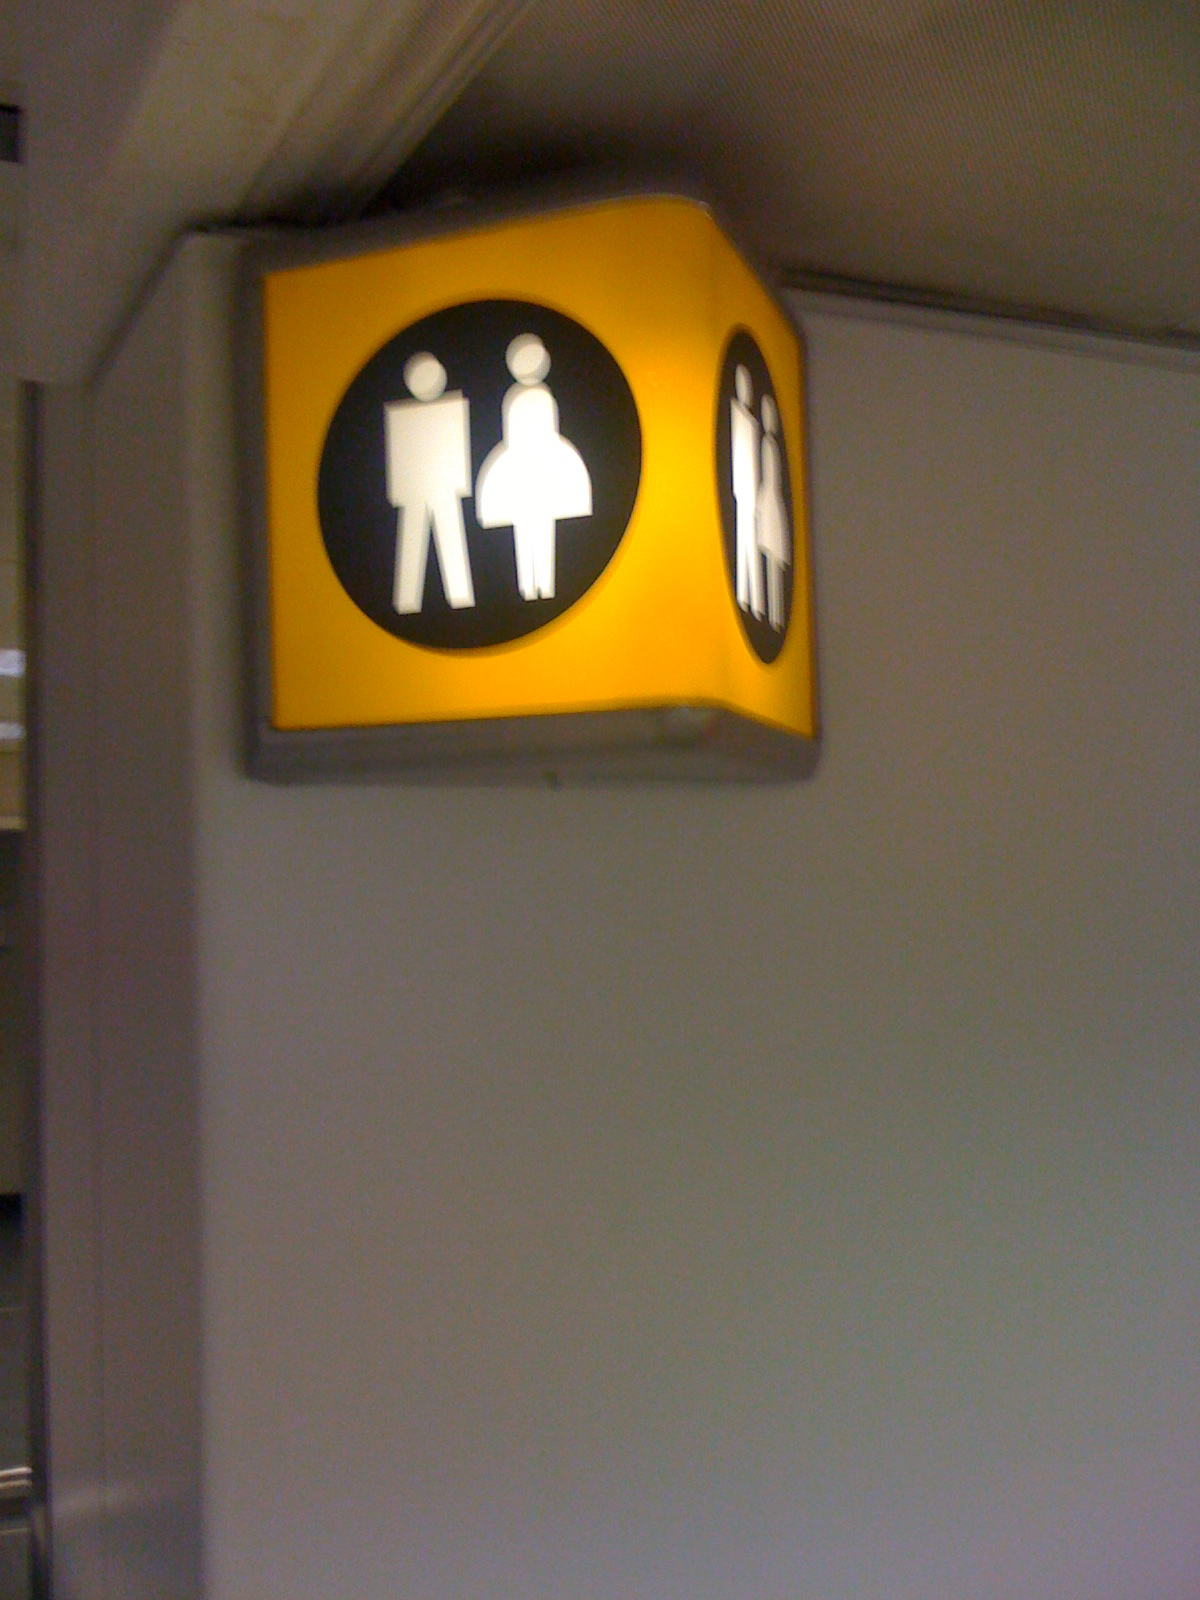 Europe 2010 Sexy Bathroom Sign-9971